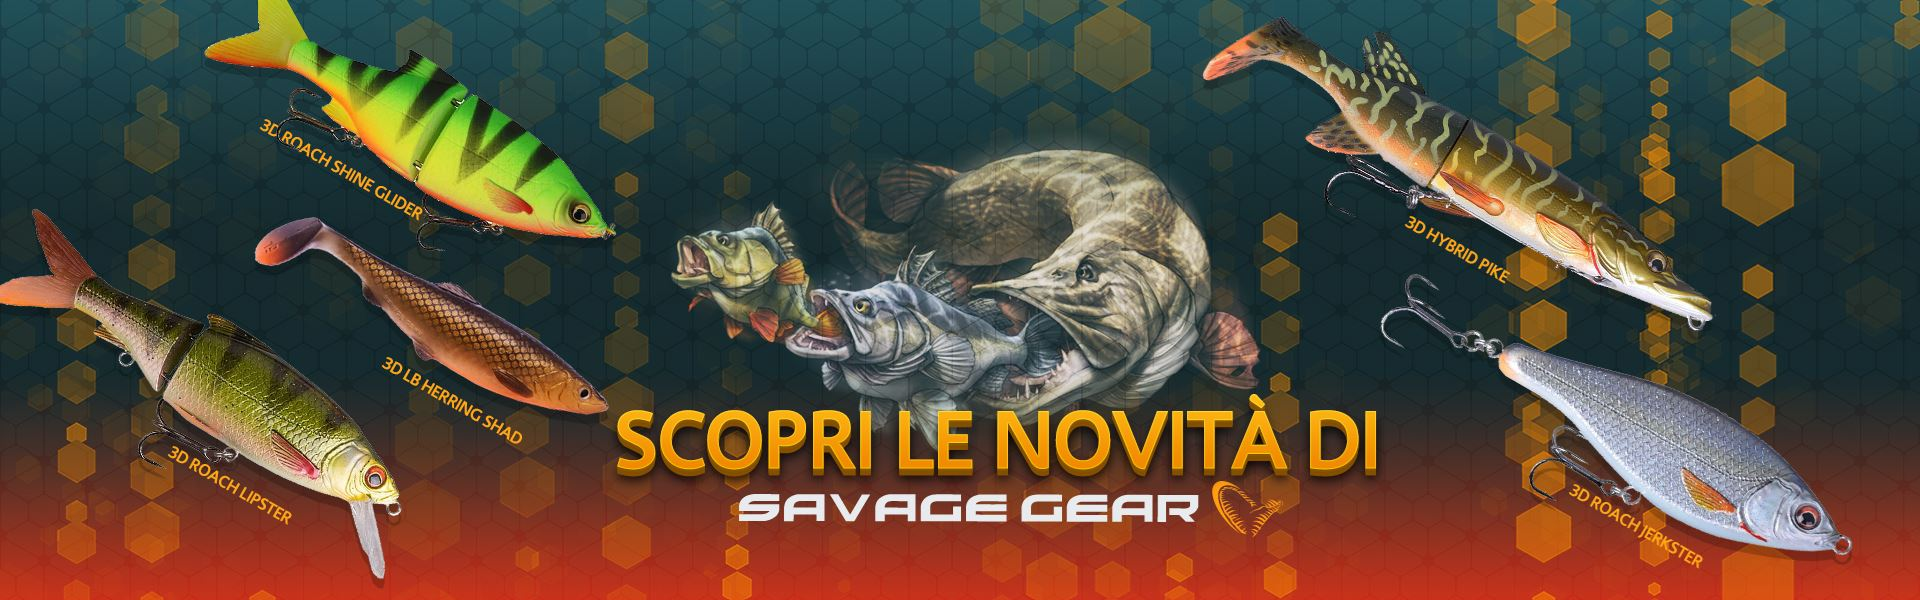 savage gear, 3d herring, 3d hybrid pike, pike fishing, perch fishing, pesca al luccio, spinning, casting, esche rigide, shad, swimbait, grub